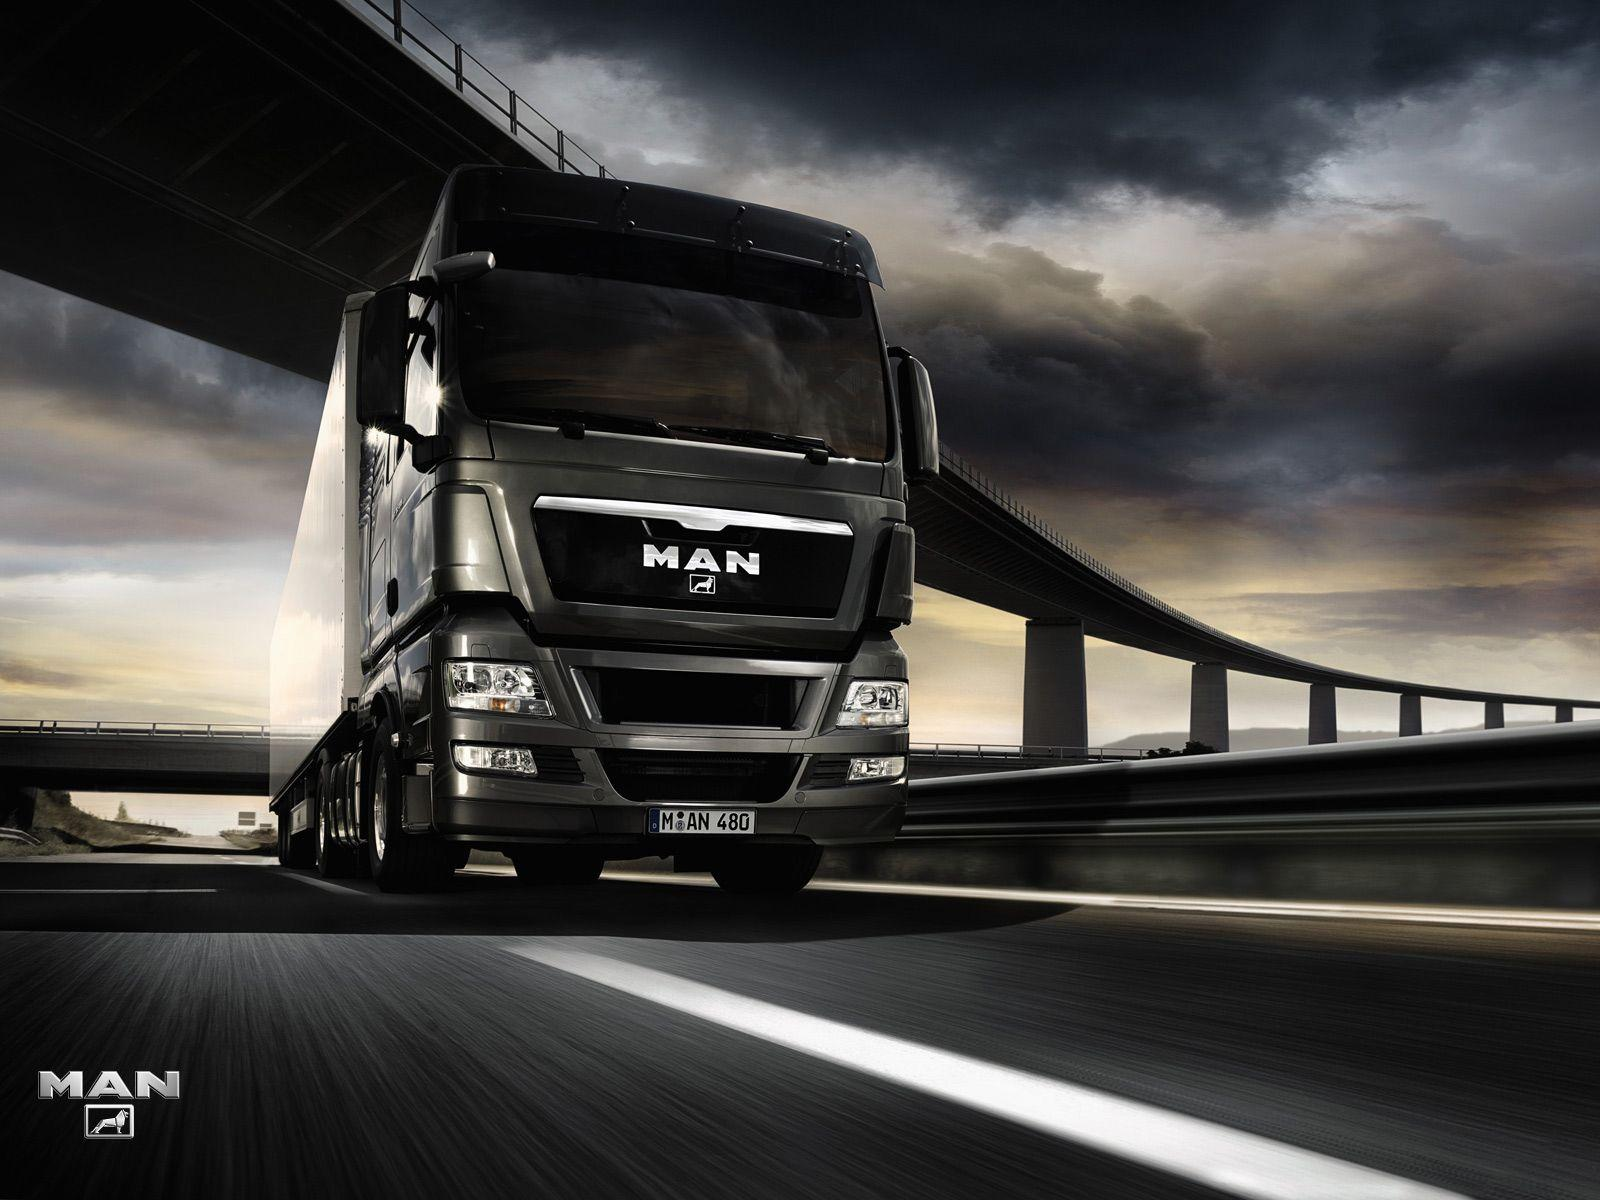 MAN Truck Wallpapers   Pickup Truck Free HD Wallpapers, Images .